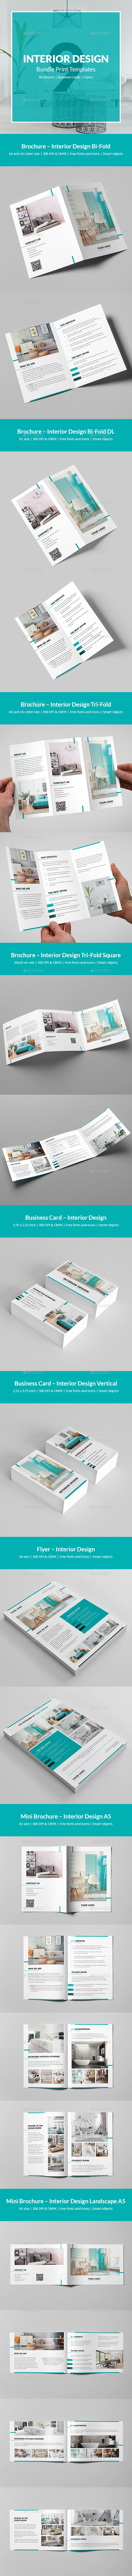 GraphicRiver Interior Design Bundle Print Templates 9 in 1 21117172